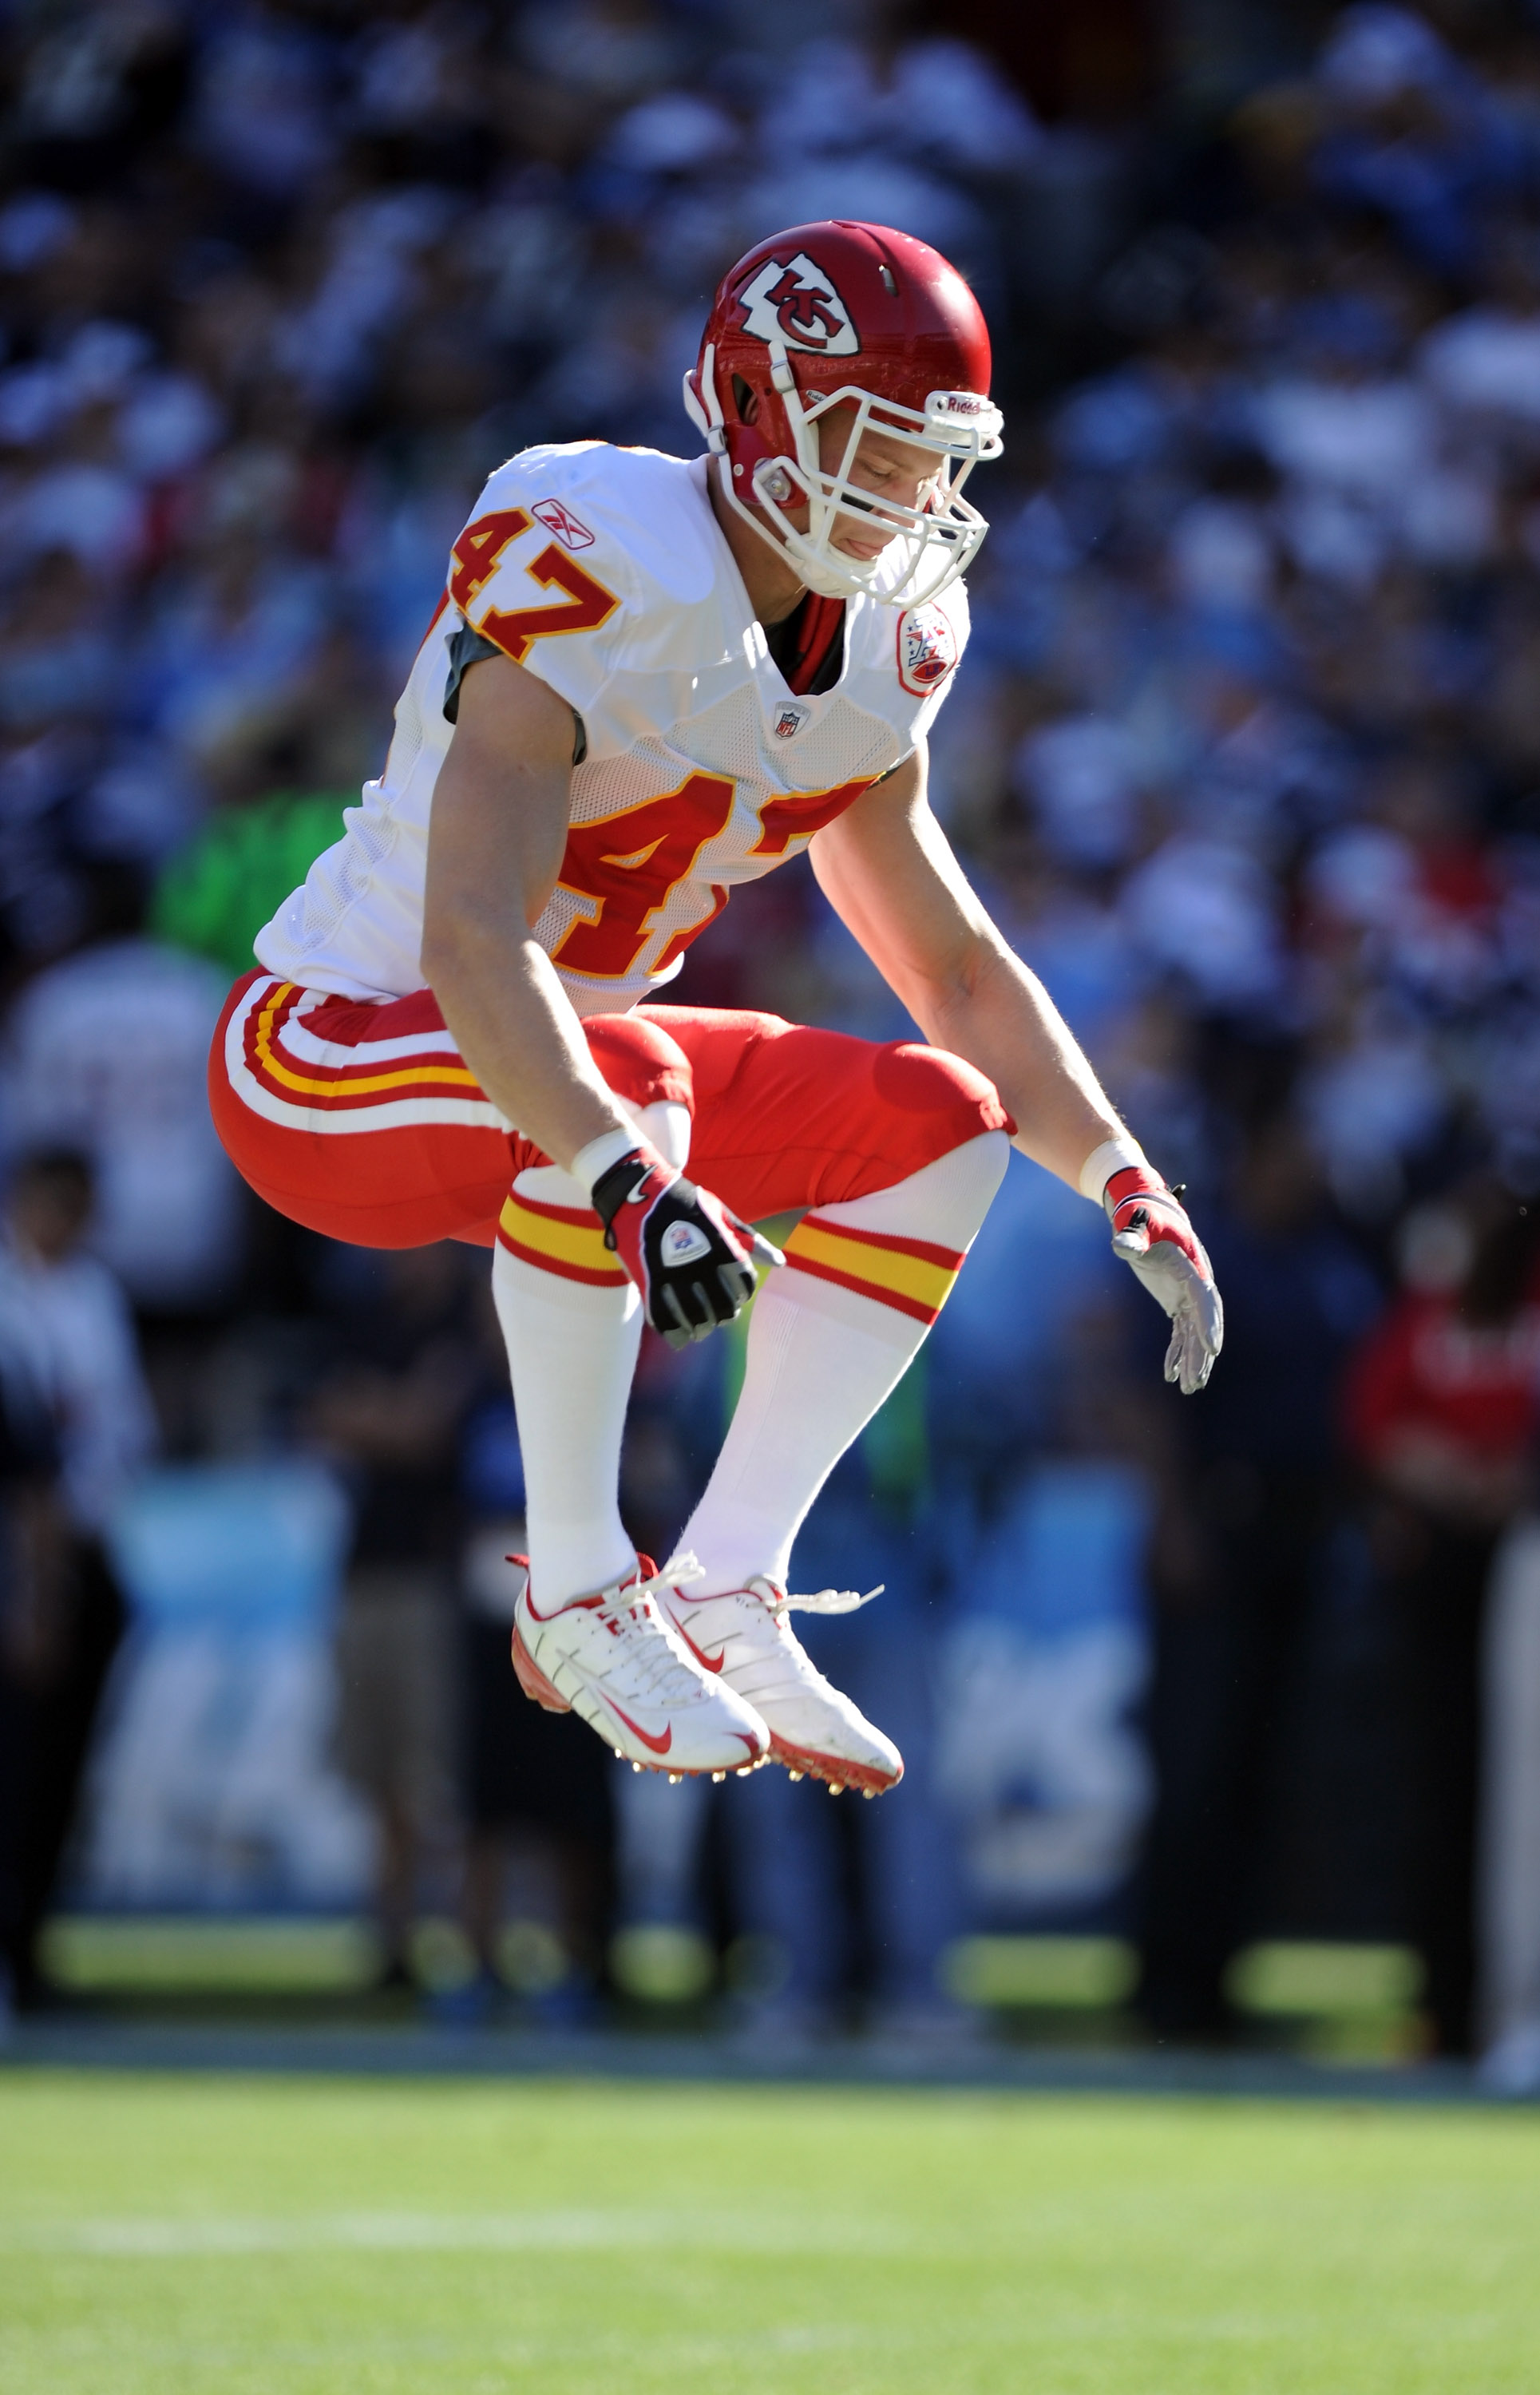 Jon McGraw and the Chiefs have a few more hoops to jump through before they can legitimately contend.